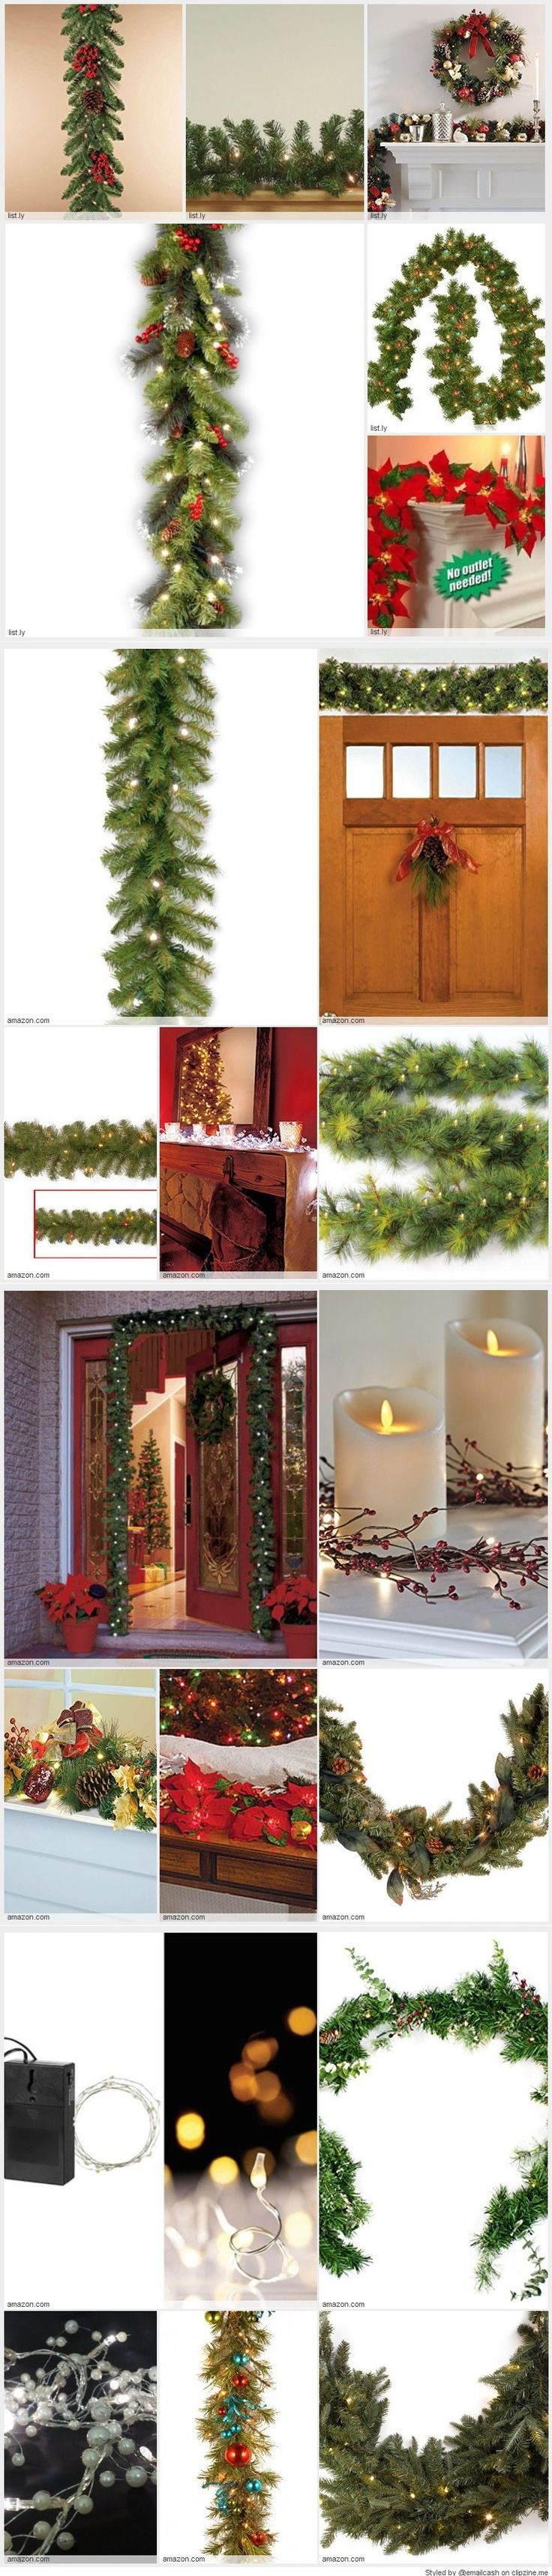 Bethlehem lights wreath battery operated - Battery Operated Christmas Garland